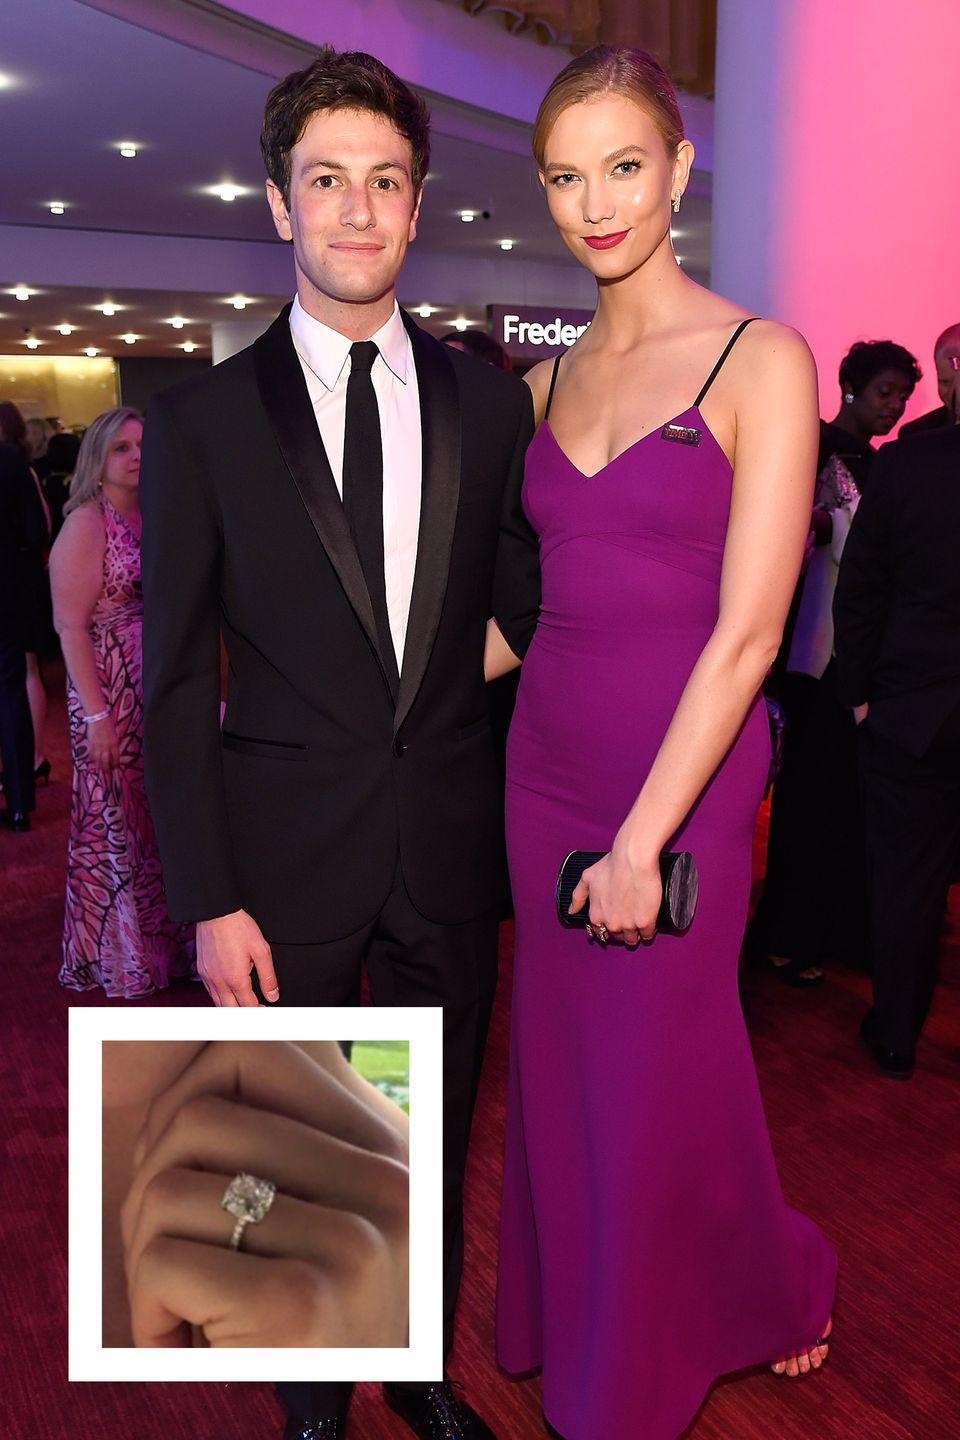 """<p>Karlie Kloss and <a href=""""https://www.townandcountrymag.com/society/politics/news/a8821/joshua-kushner-jared-kushner-brother/"""" rel=""""nofollow noopener"""" target=""""_blank"""" data-ylk=""""slk:longtime boyfriend Josh Kushner"""" class=""""link rapid-noclick-resp"""">longtime boyfriend Josh Kushner</a> announced their engagement in July 2018. Kushner proposed with <a href=""""https://www.townandcountrymag.com/society/tradition/a22534506/karlie-kloss-engagement-ring-joshua-kushner/"""" rel=""""nofollow noopener"""" target=""""_blank"""" data-ylk=""""slk:a gorgeous diamond ring,"""" class=""""link rapid-noclick-resp"""">a gorgeous diamond ring,</a> with a cushion cut center stone that weighs between seven and eight carats set on a delicate diamond-adorned band. The ring is estimated to cost between $200,000 and $500,000, depending on the quality of the center stone. Kloss and Kushner <a href=""""https://www.townandcountrymag.com/the-scene/weddings/a22534526/karlie-kloss-joshua-kushner-wedding/"""" rel=""""nofollow noopener"""" target=""""_blank"""" data-ylk=""""slk:married in a private ceremony"""" class=""""link rapid-noclick-resp"""">married in a private ceremony</a> held in October 2018.</p>"""